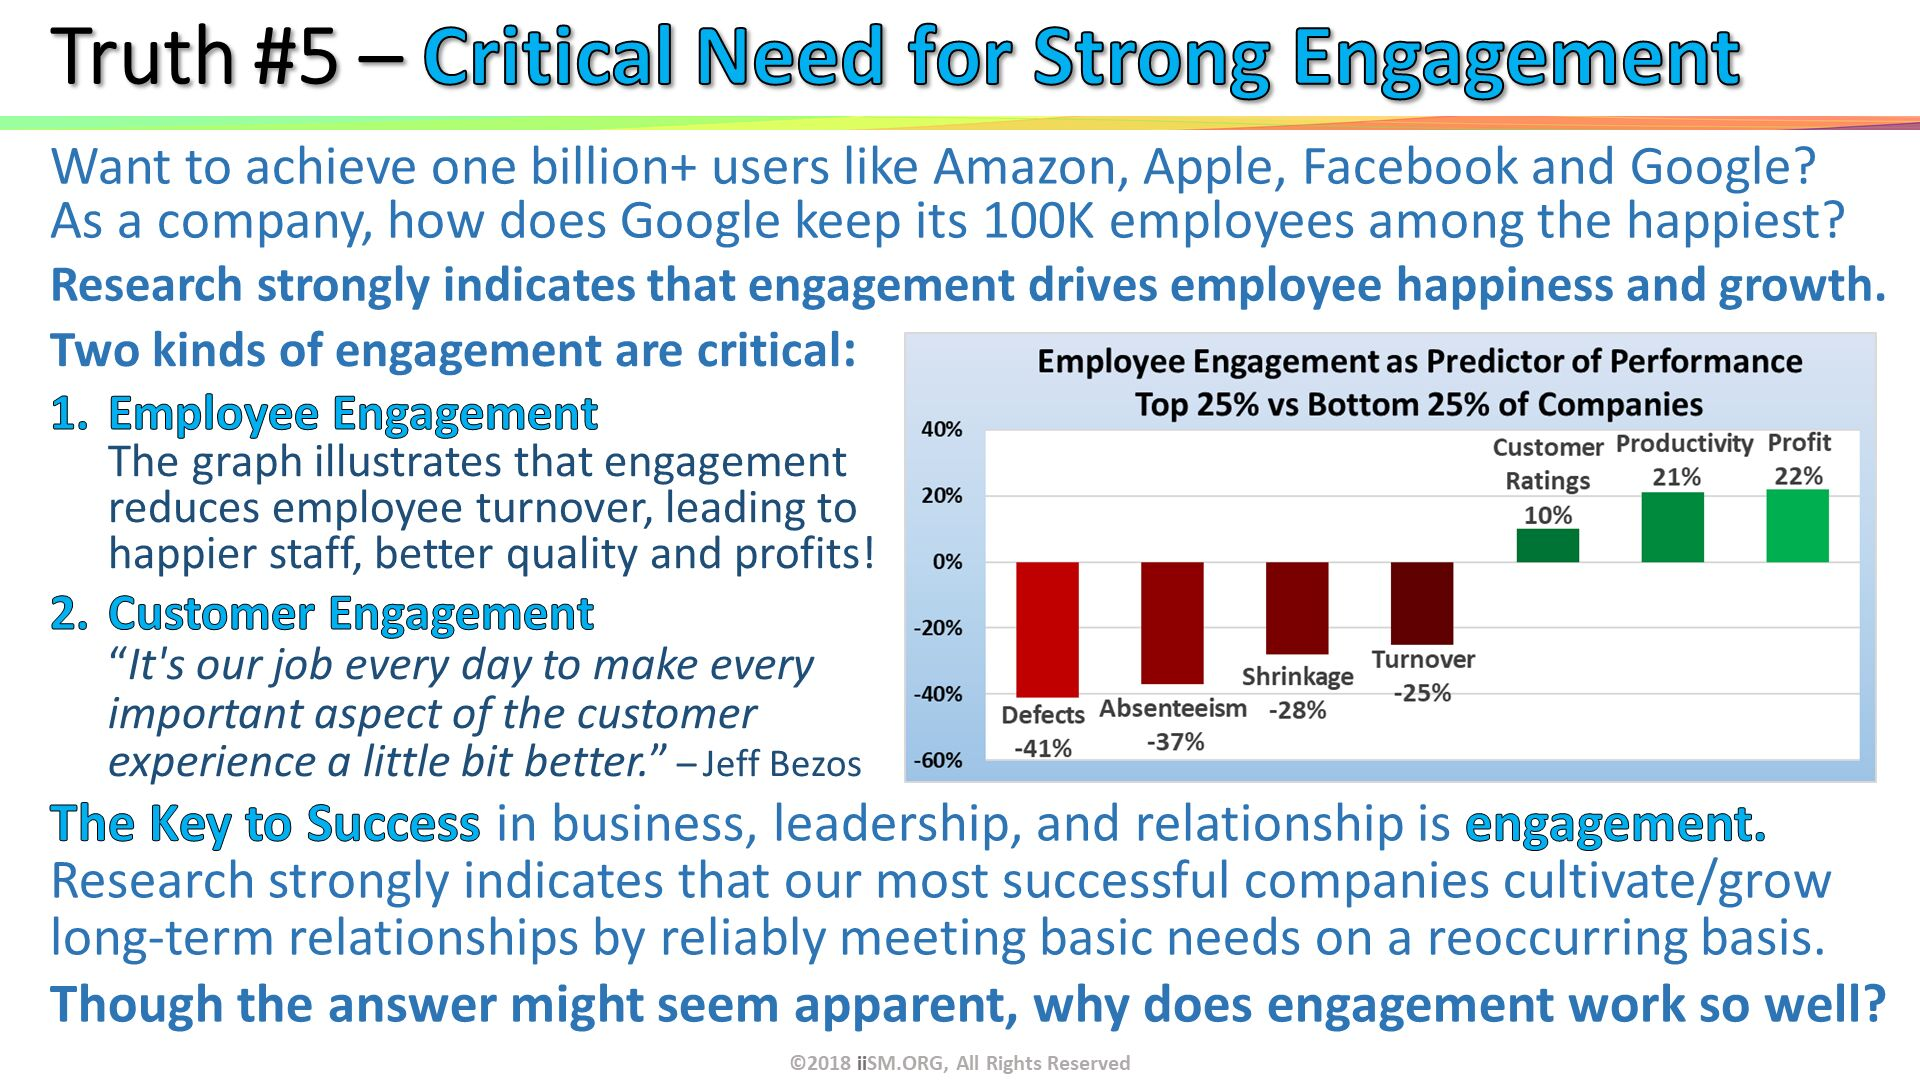 "Truth #5 – Critical Need for Strong Engagement . ©2018 iiSM.ORG, All Rights Reserved.  . Want to achieve one billion+ users like Amazon, Apple, Facebook and Google?As a company, how does Google keep its 100K employees among the happiest? Research strongly indicates that engagement drives employee happiness and growth. The Key to Success in business, leadership, and relationship is engagement.  Research strongly indicates that our most successful companies cultivate/grow long-term relationships by reliably meeting basic needs on a reoccurring basis. Though the answer might seem apparent, why does engagement work so well?  . Two kinds of engagement are critical: Employee EngagementThe graph illustrates that engagement reduces employee turnover, leading to happier staff, better quality and profits!  Customer Engagement ""It's our job every day to make every important aspect of the customer experience a little bit better."" – Jeff Bezos."